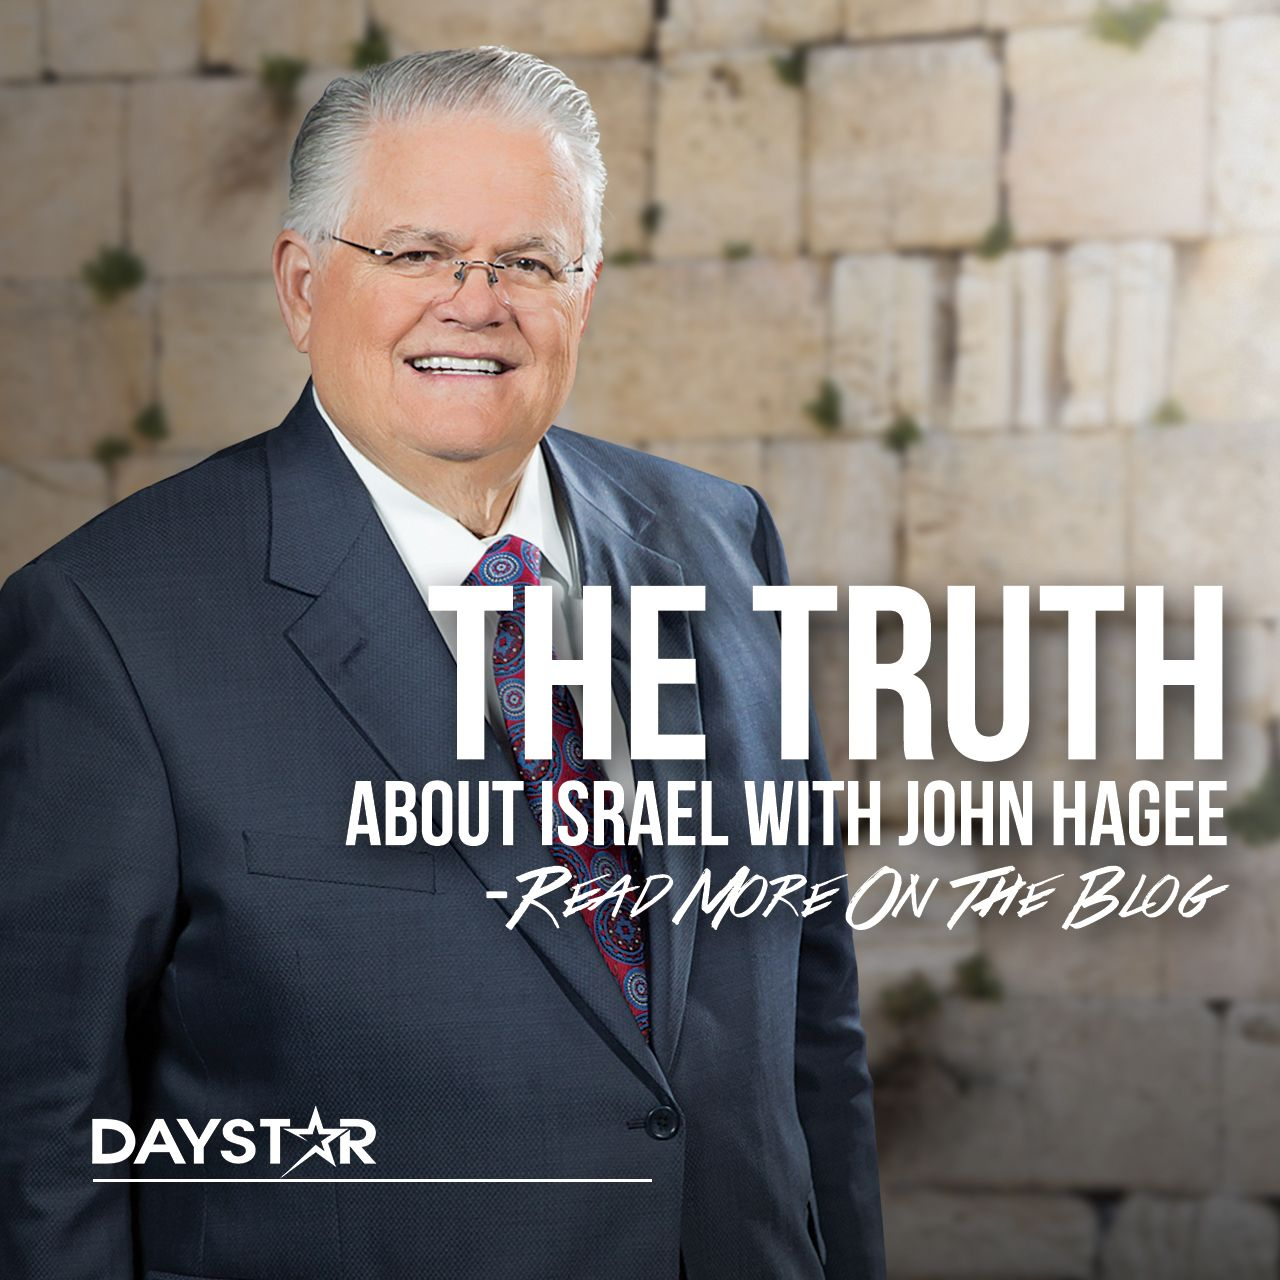 John Hagee - The Truth About Israel | Israel | John hagee